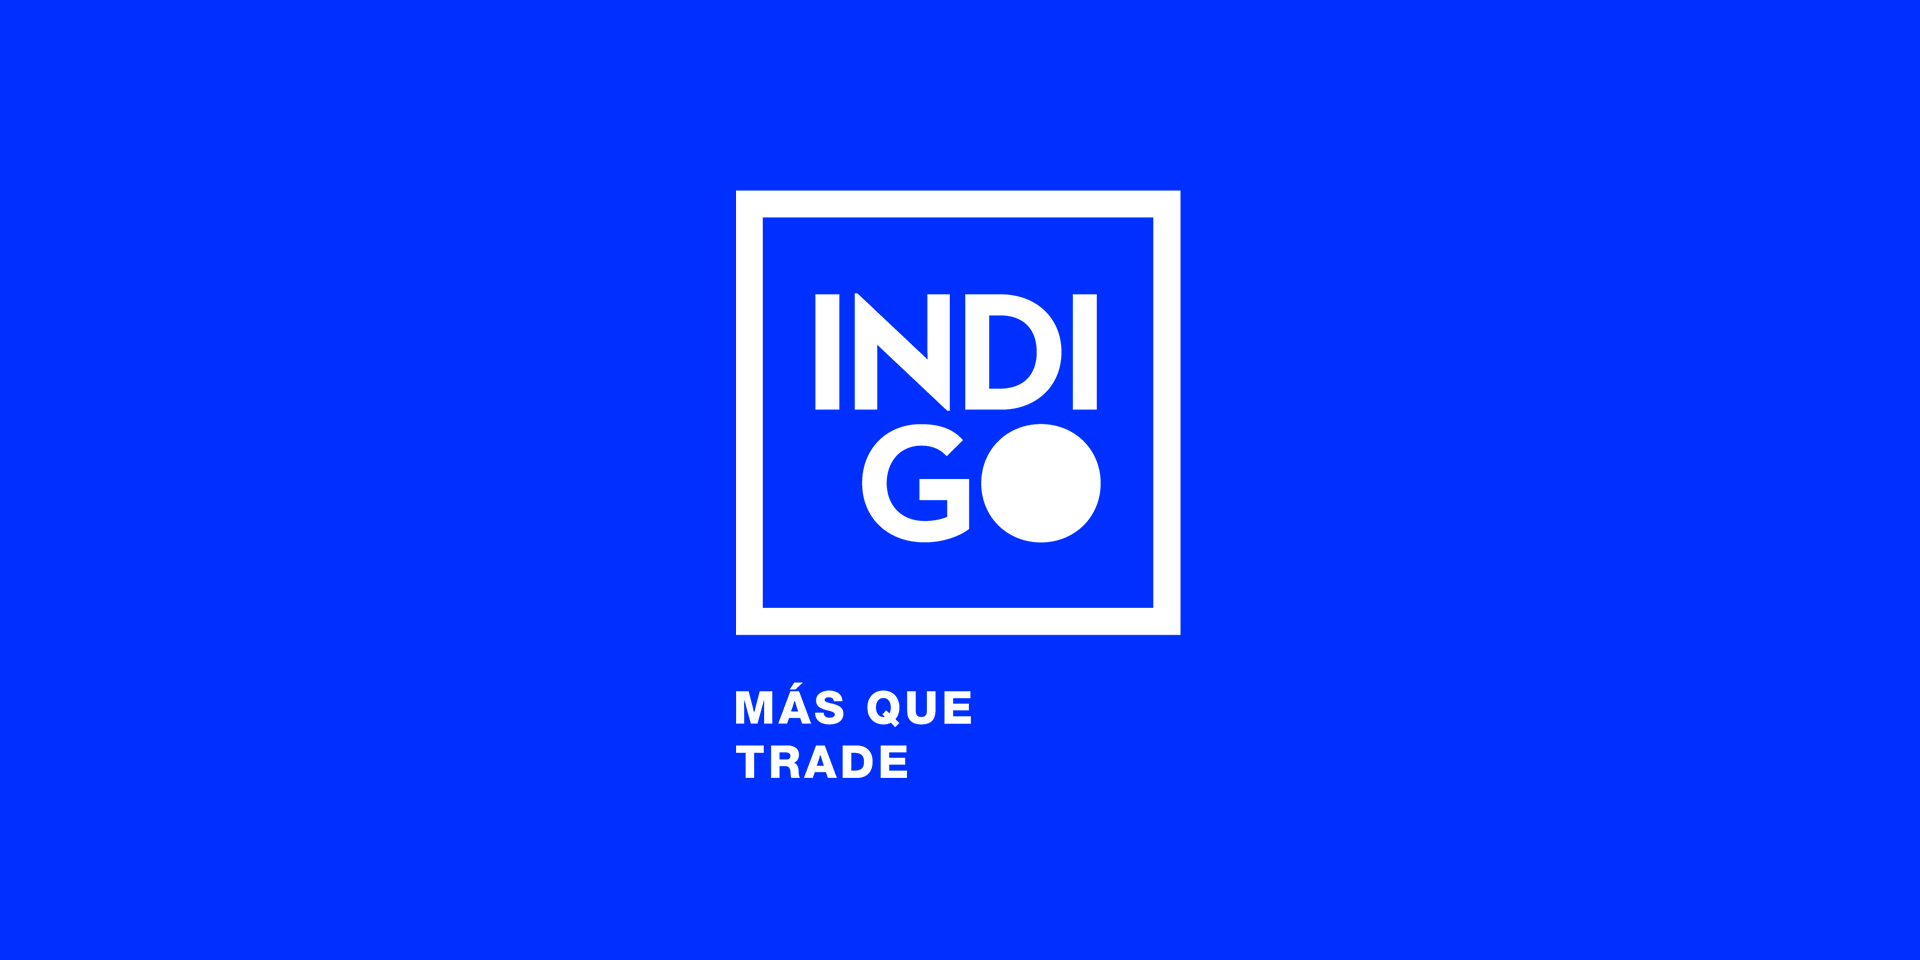 Indigo identidad creatividad trade marketing